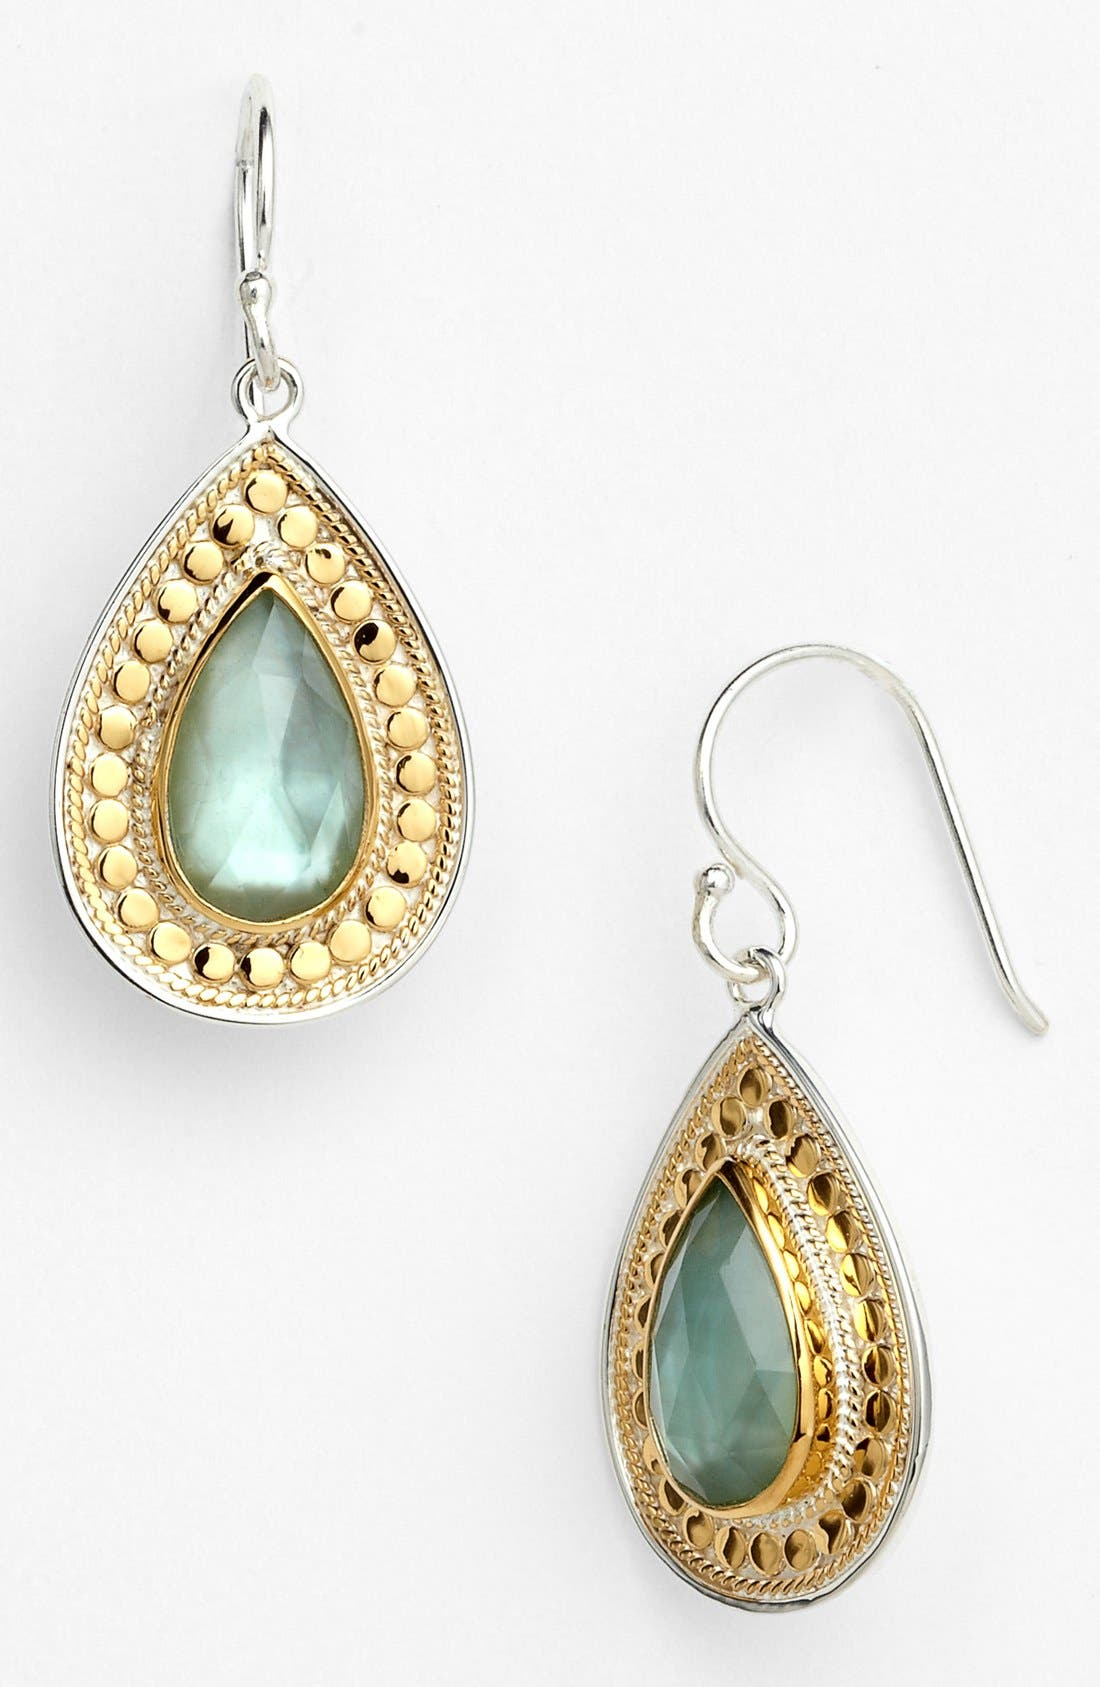 Main Image - Anna Beck 'Gili' Small Teardrop Earrings